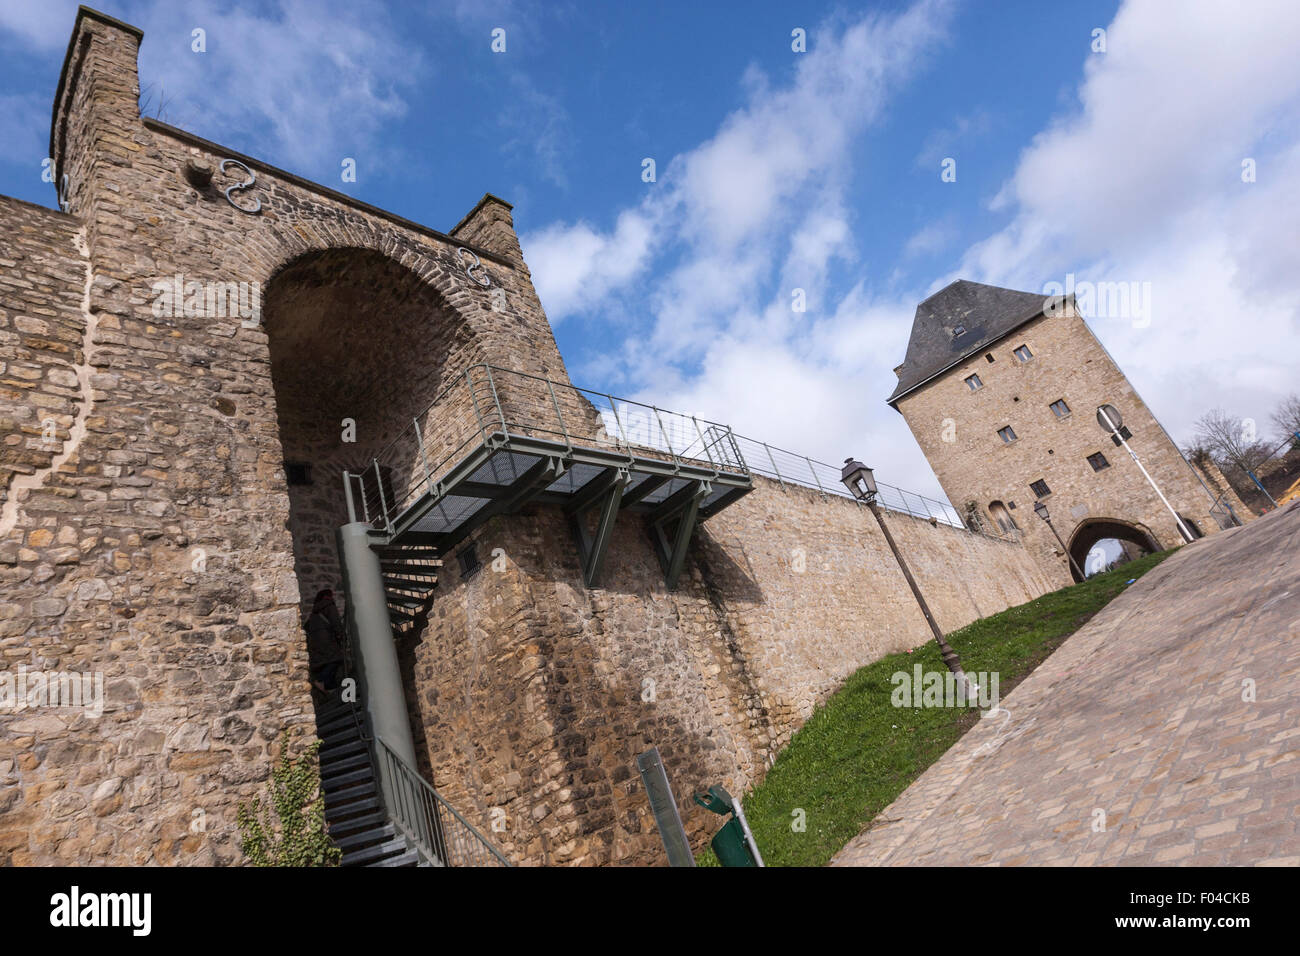 Part of Luxembourg City's fortifications. Jacob's Tower - Stock Image